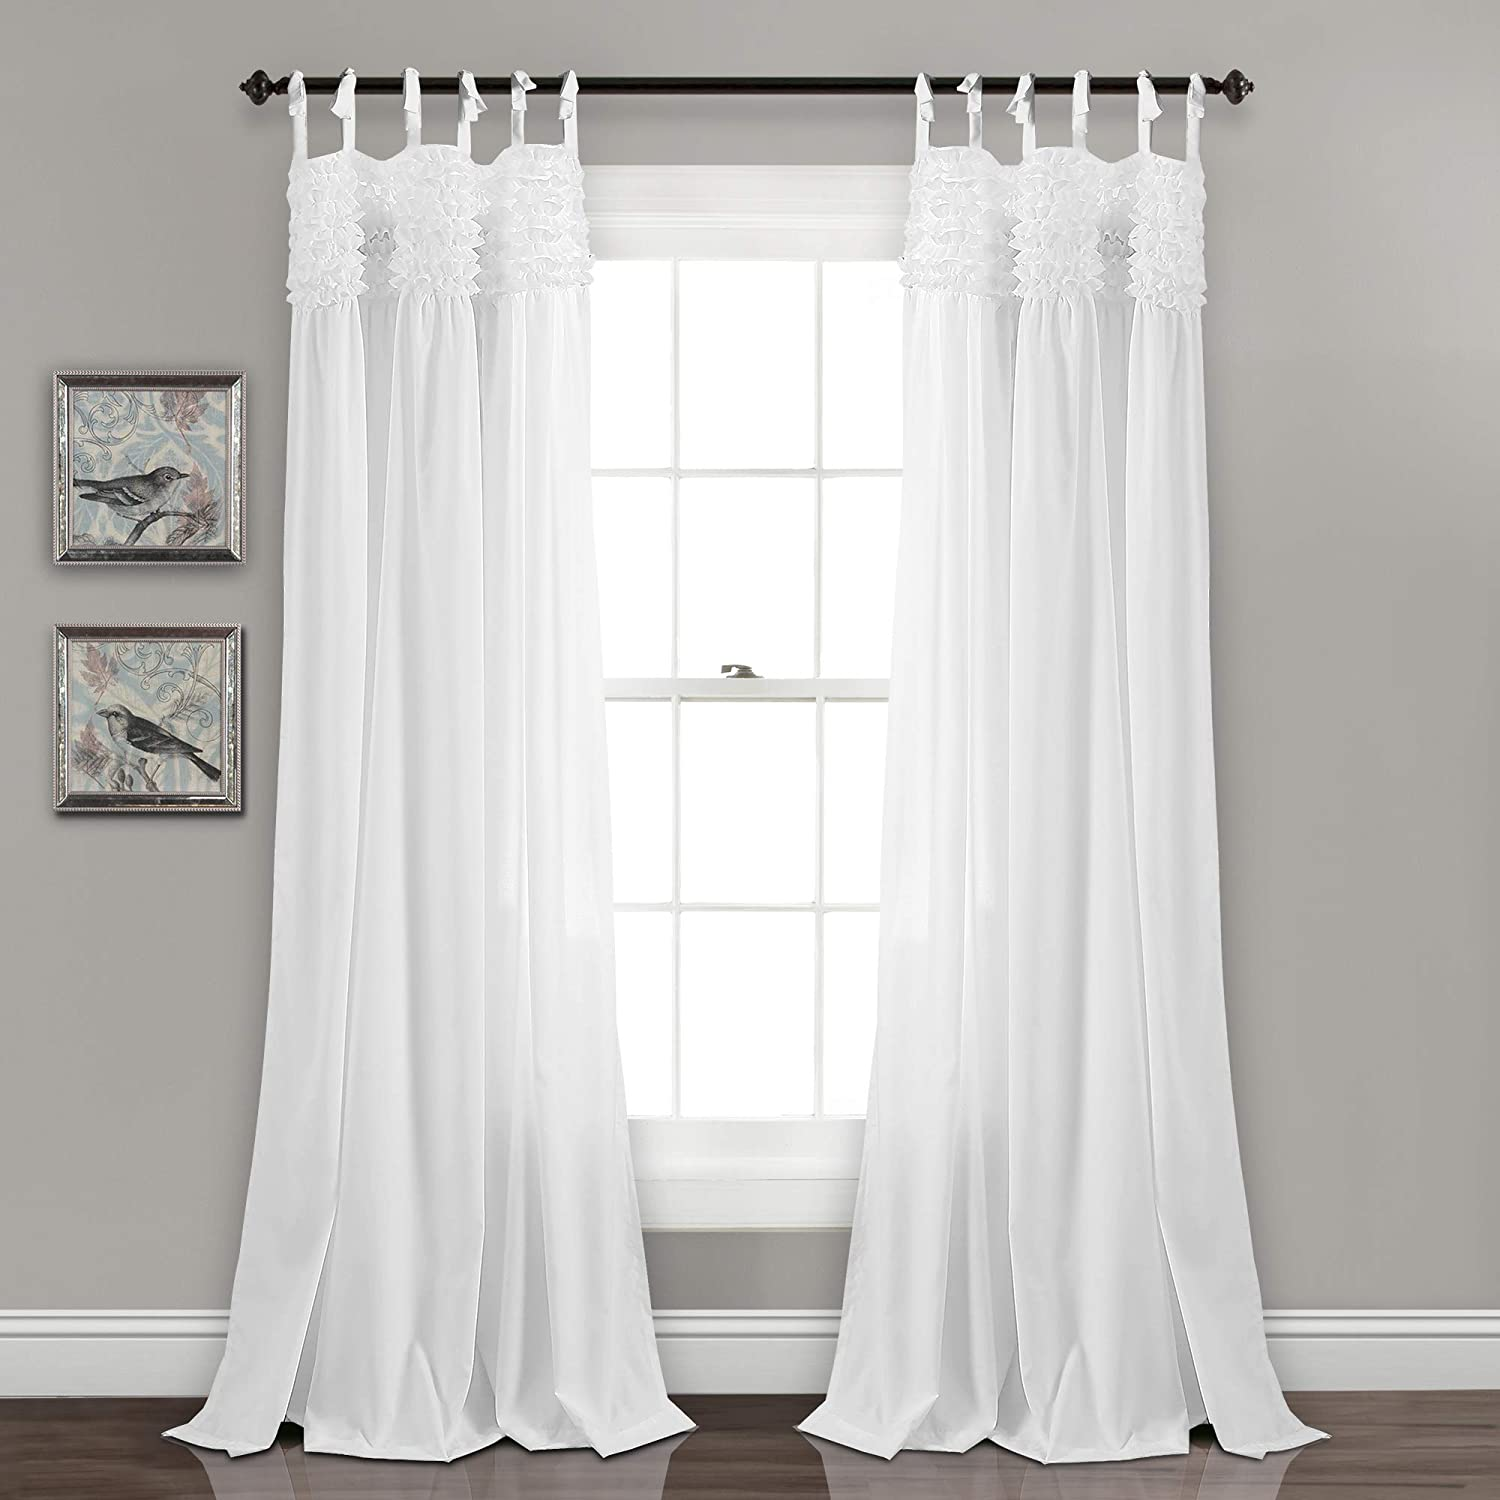 "Lush Decor Lydia Curtains Ruffle Window Panel Set for Living, Dining, Bedroom (Pair), 84"" L, White"